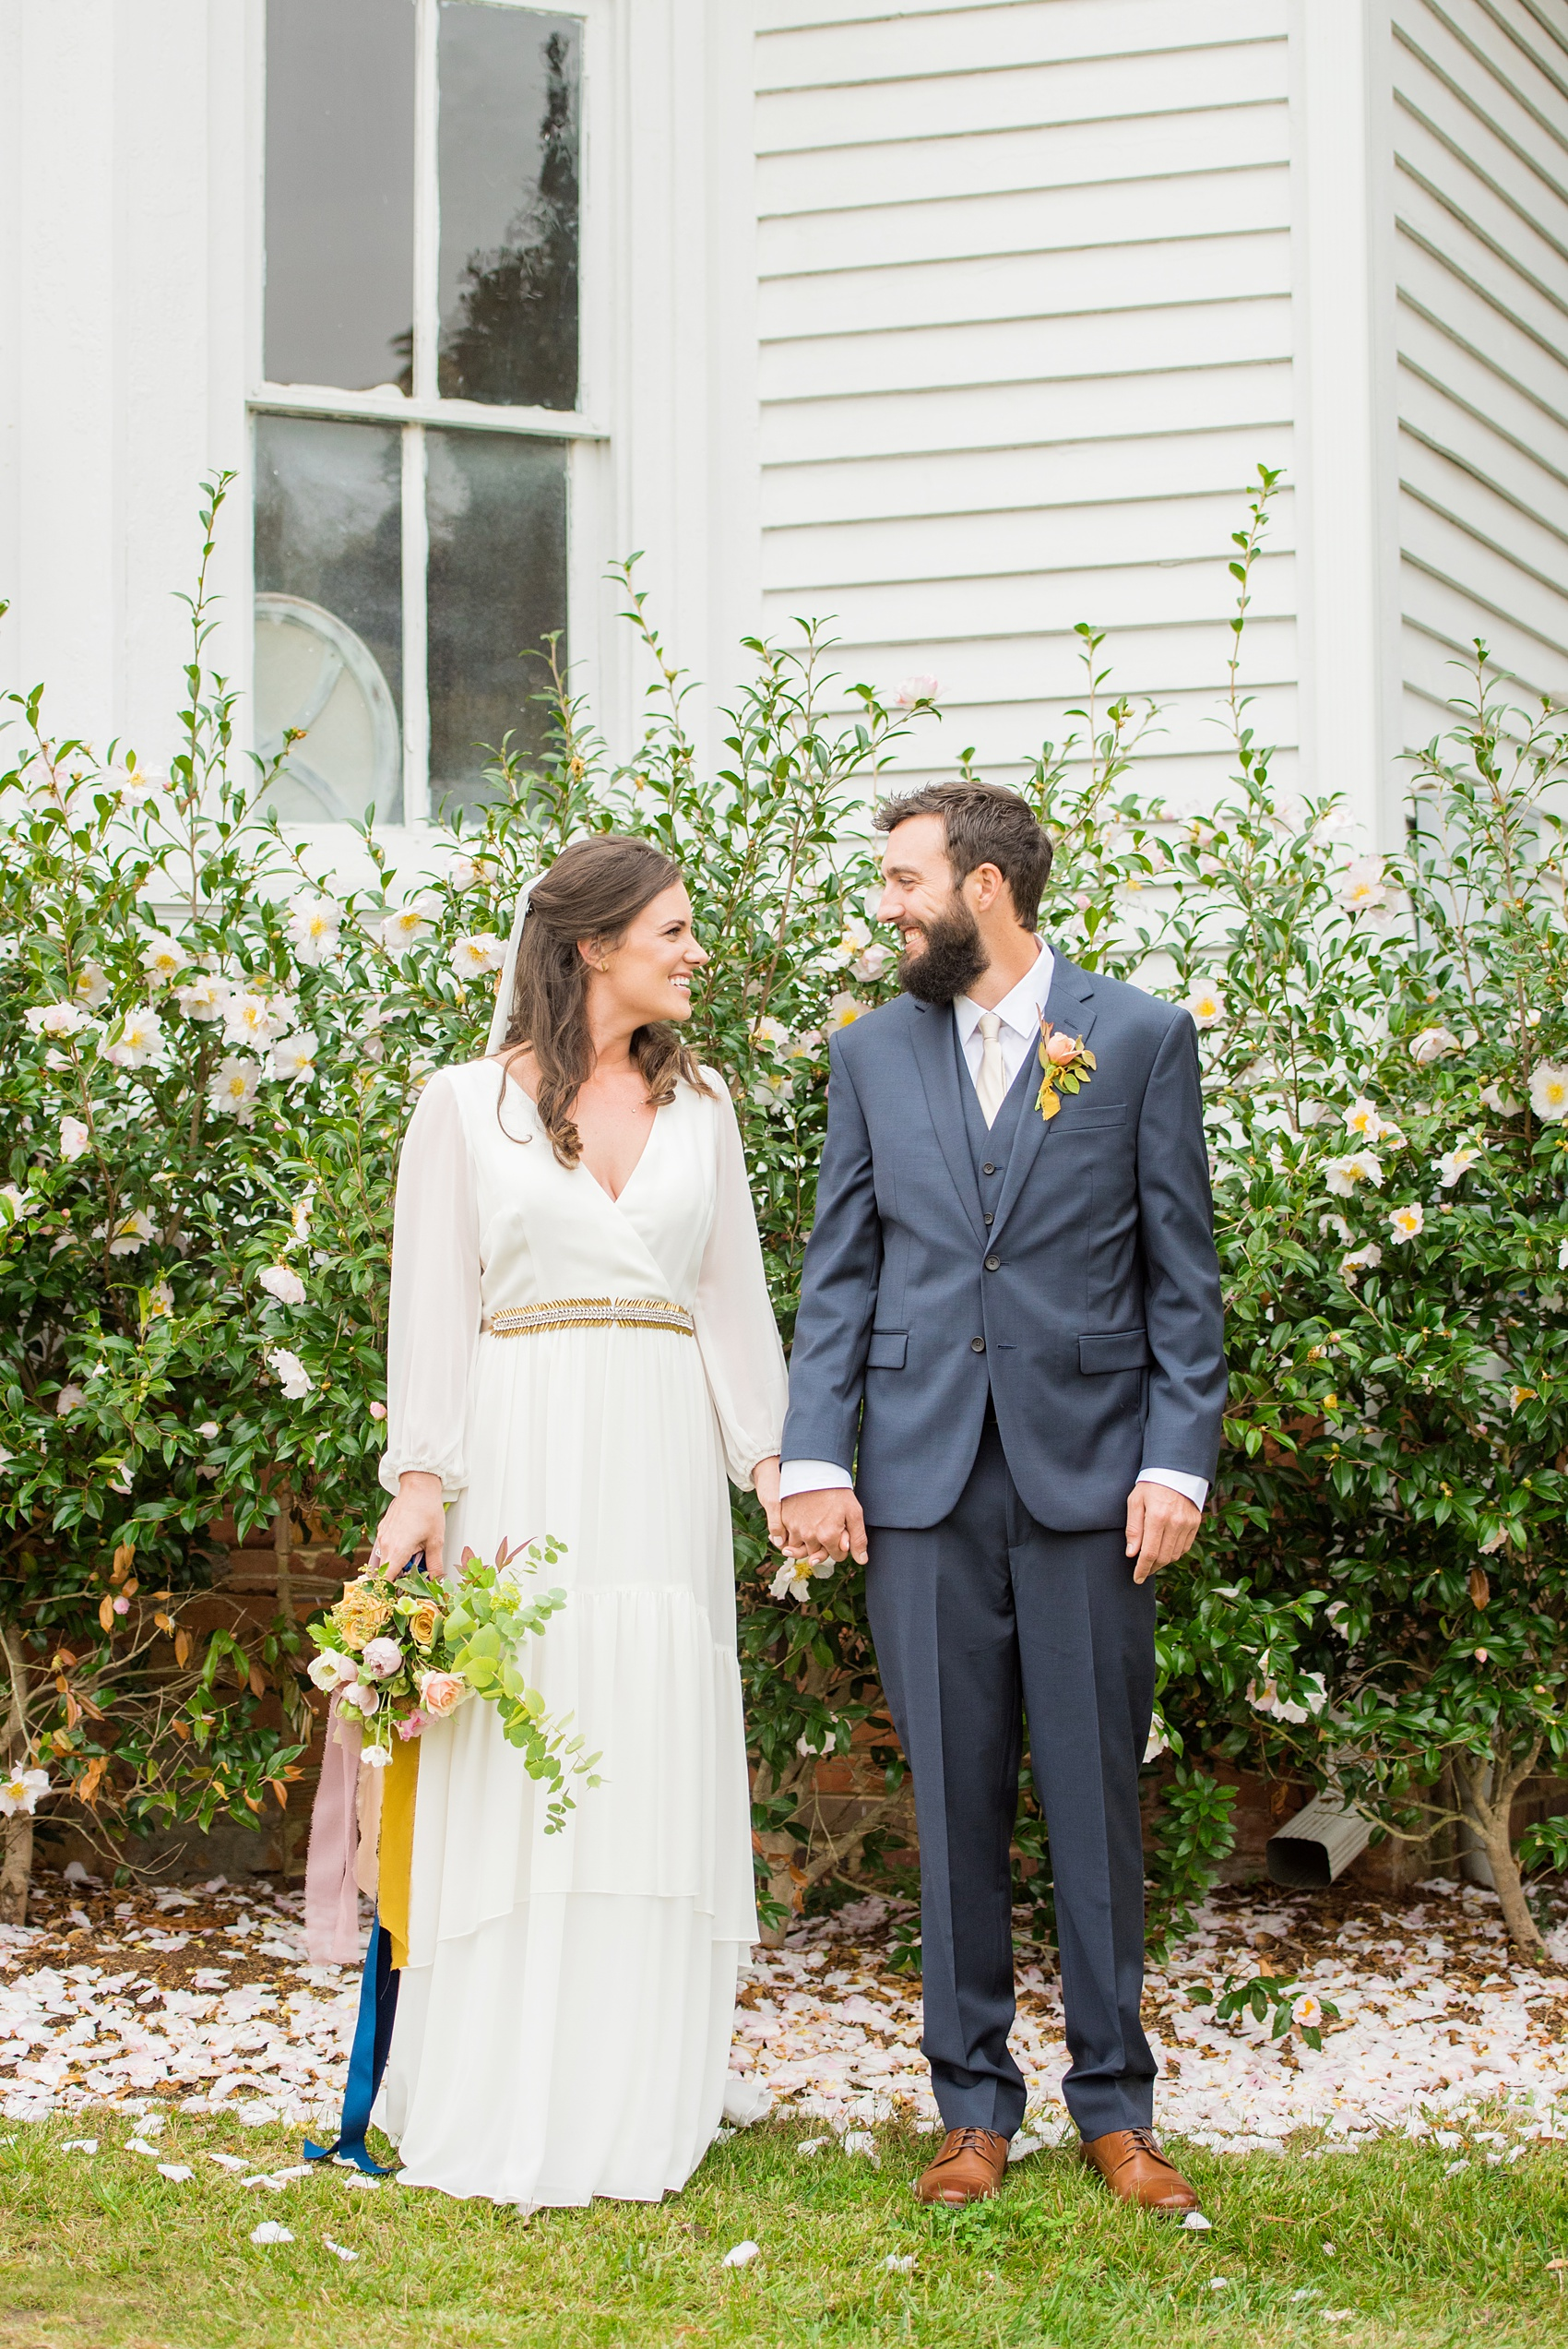 Mikkel Paige Photography photos from a wedding at Leslie-Alford Mims House in North Carolina. Picture of the bride and groom at the historic southern home venue amidst Camellia pink flower petals.